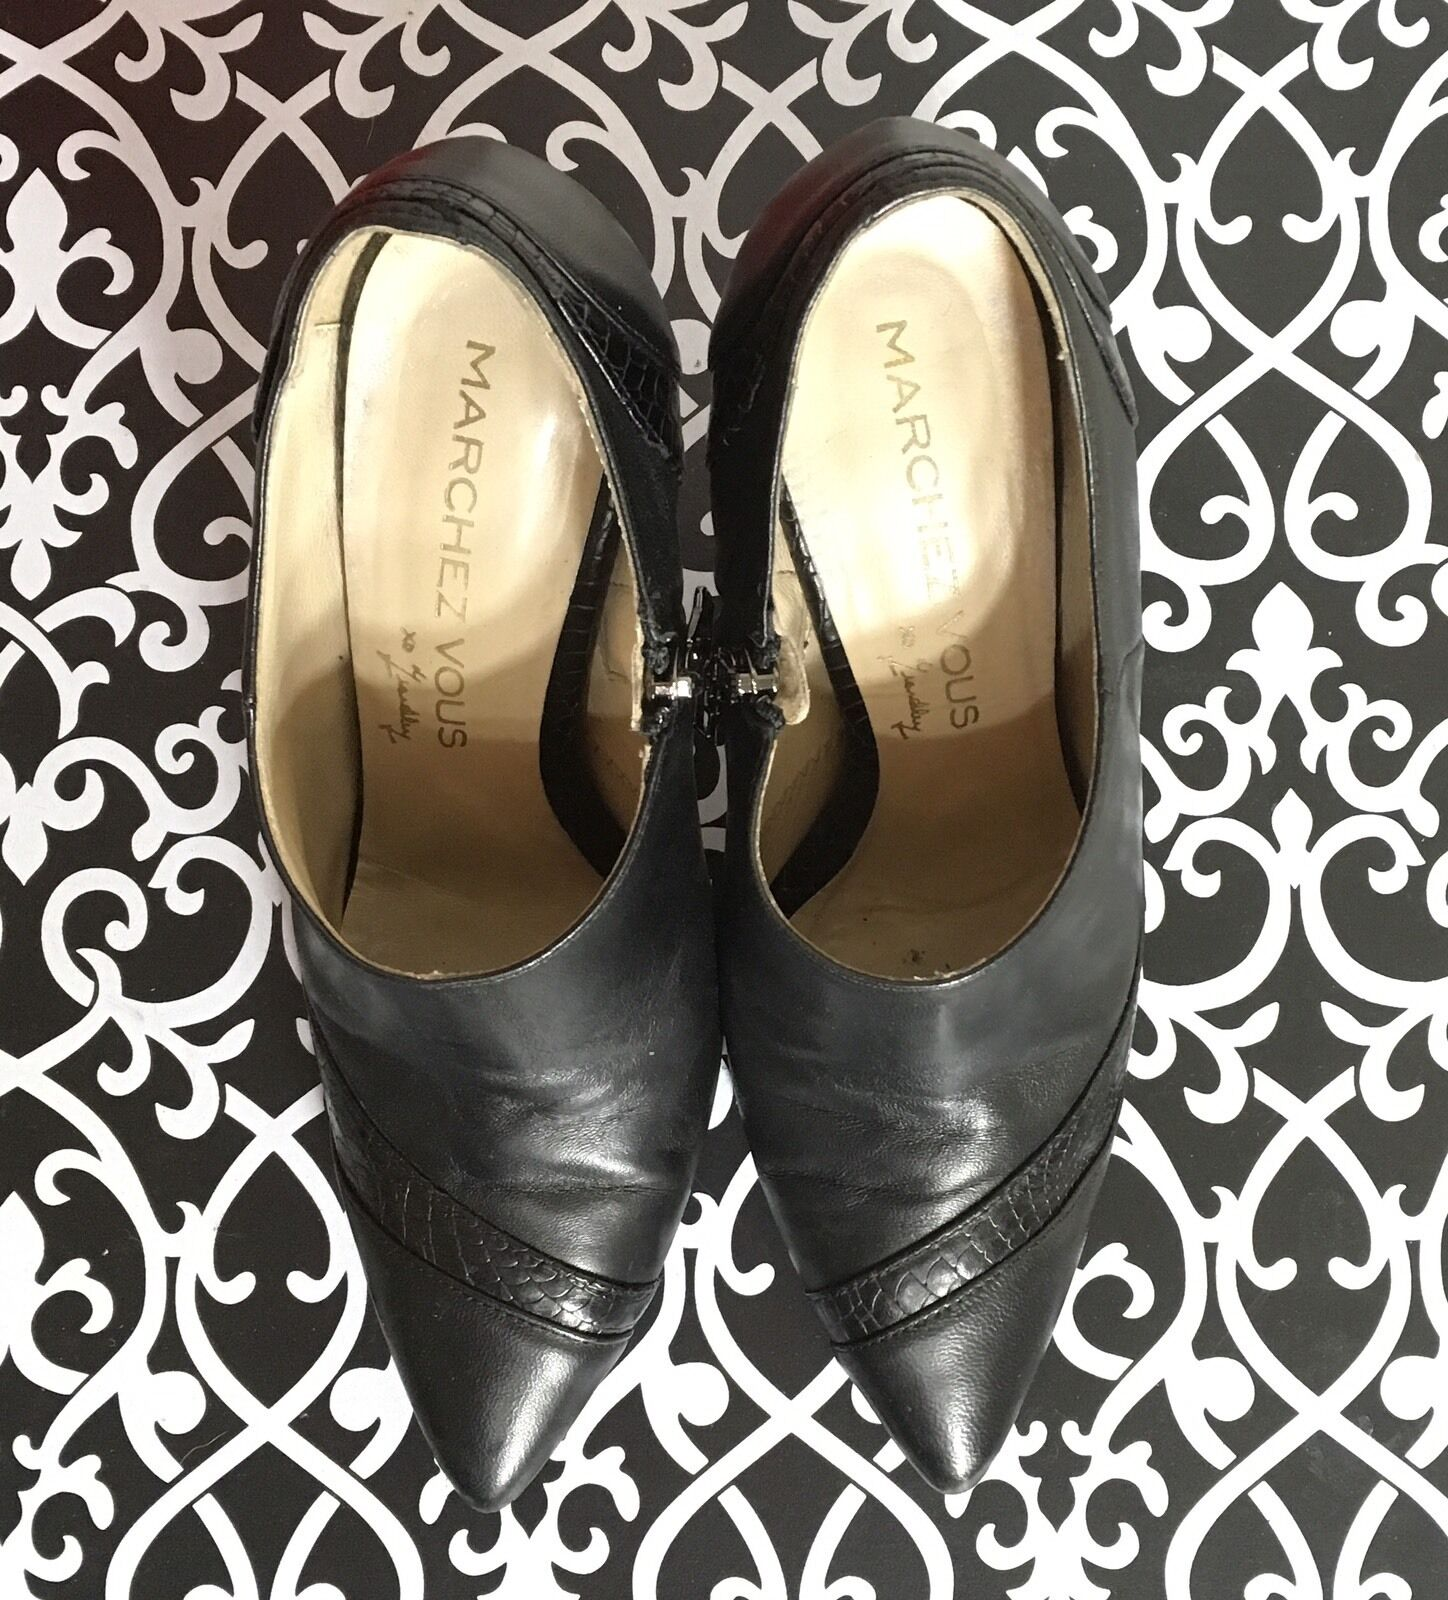 MARCHEZ VOUS by Yeardley Vida Black Ankle Boots Size 8 Leather Heels Booties